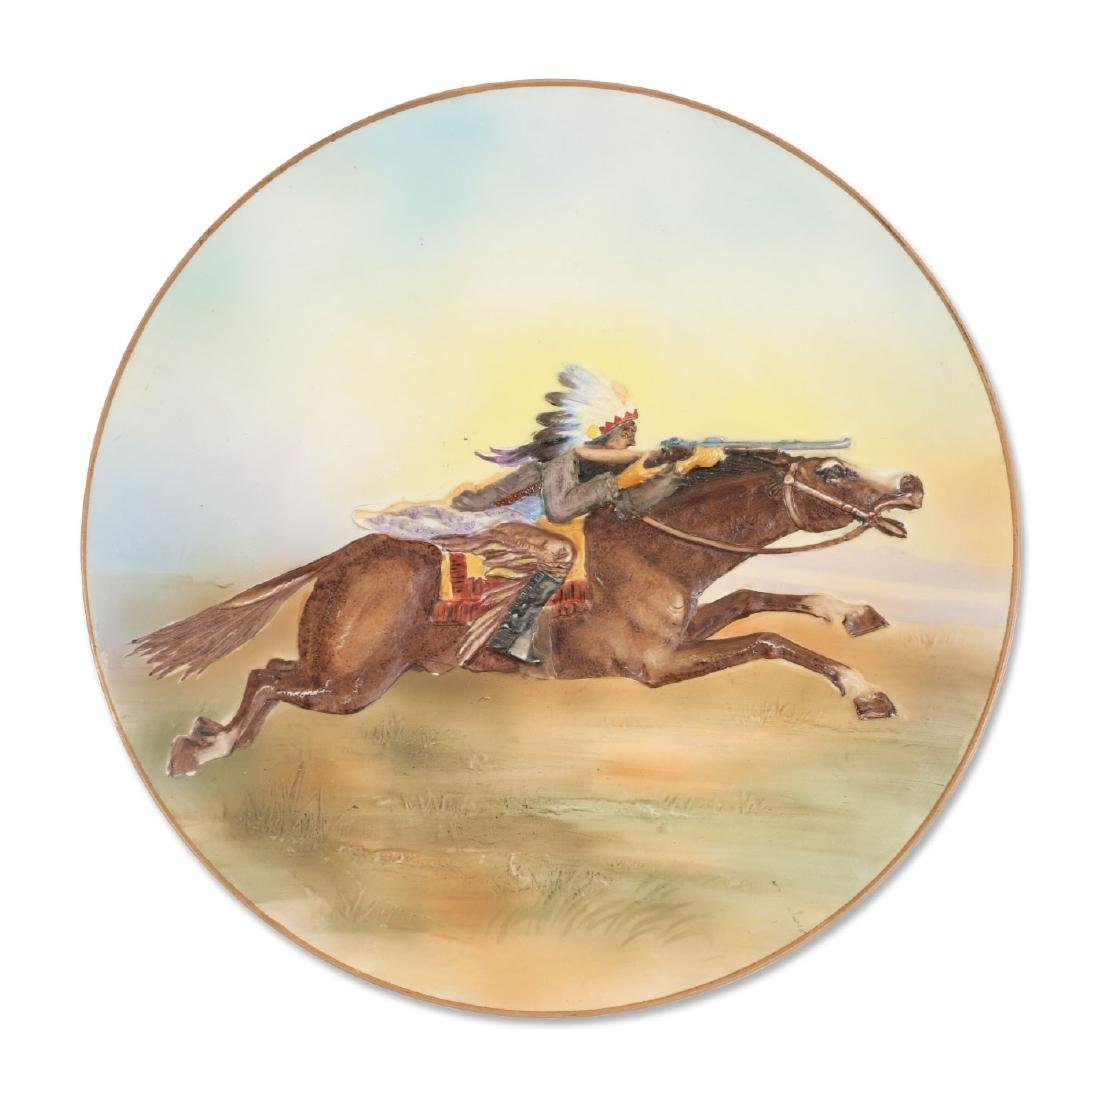 Nippon Native & Rifle Porcelain Plate